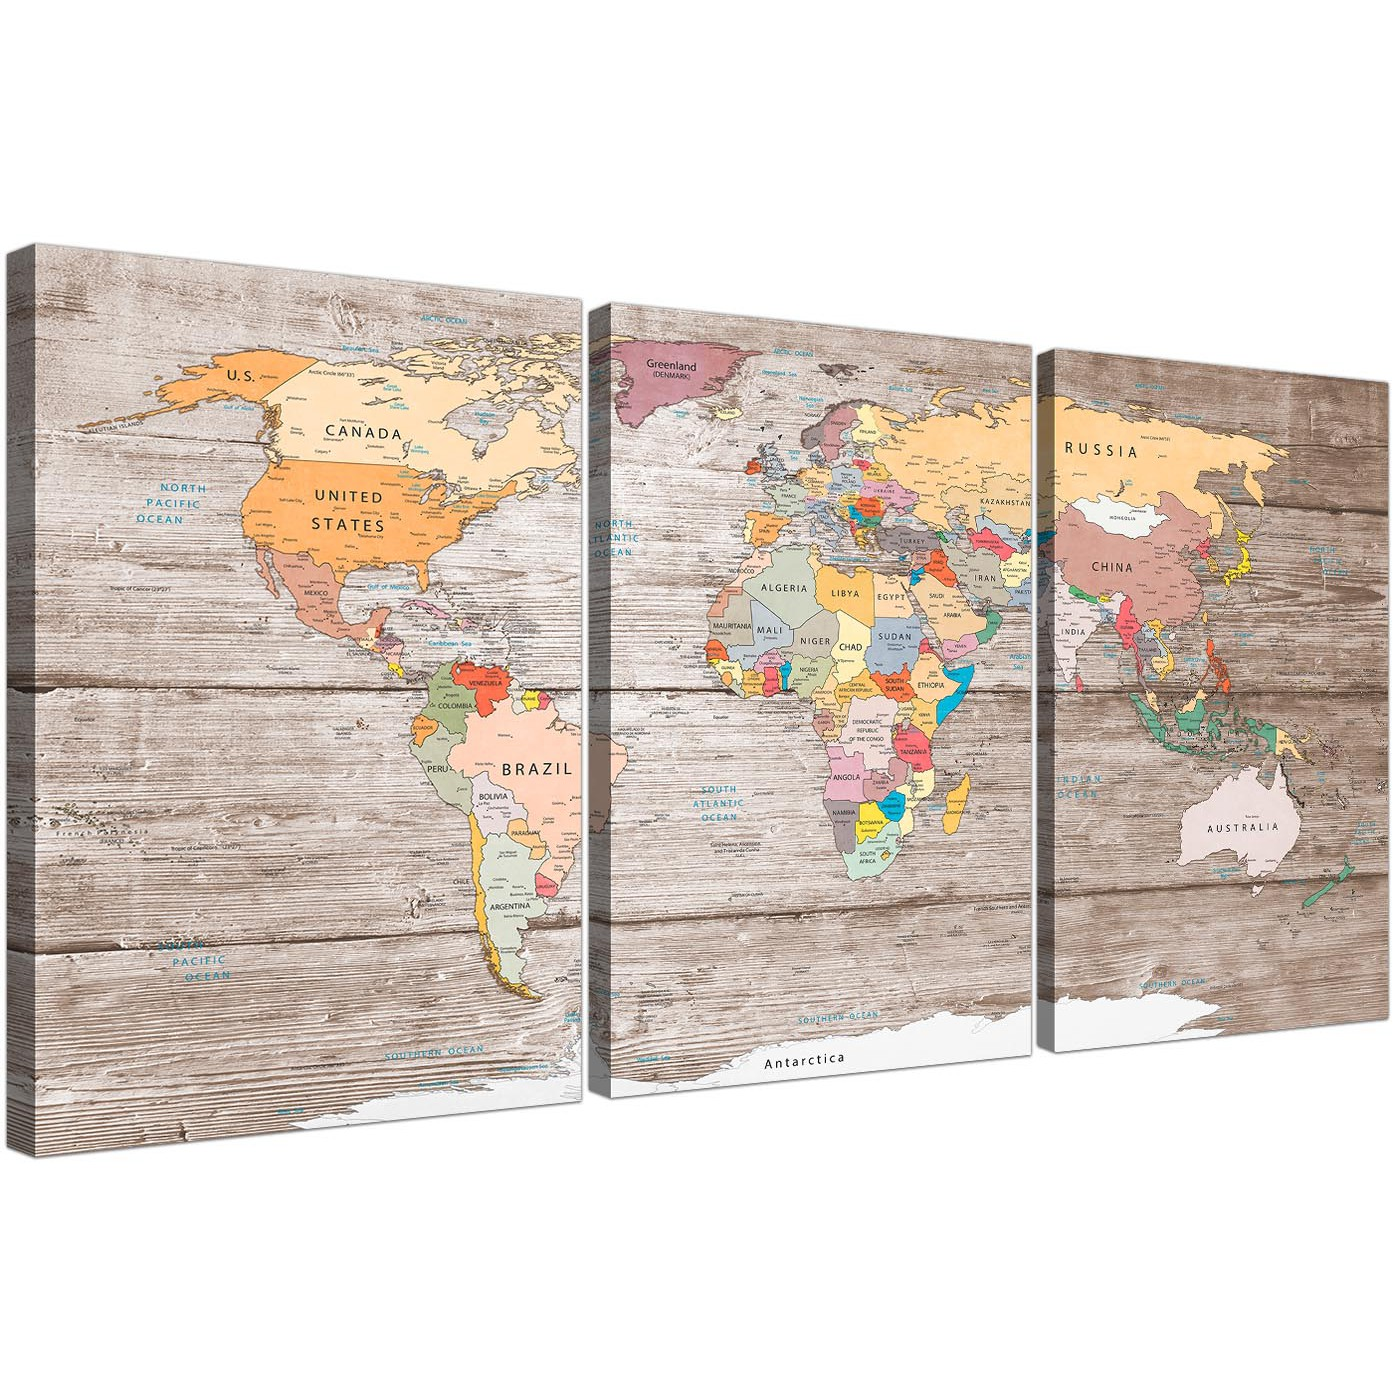 Large decorative map of world atlas canvas wall art print multi 3 oversized large decorative map of the world atlas canvas multi triptych 3326 for your kitchen display gallery item 1 sciox Images